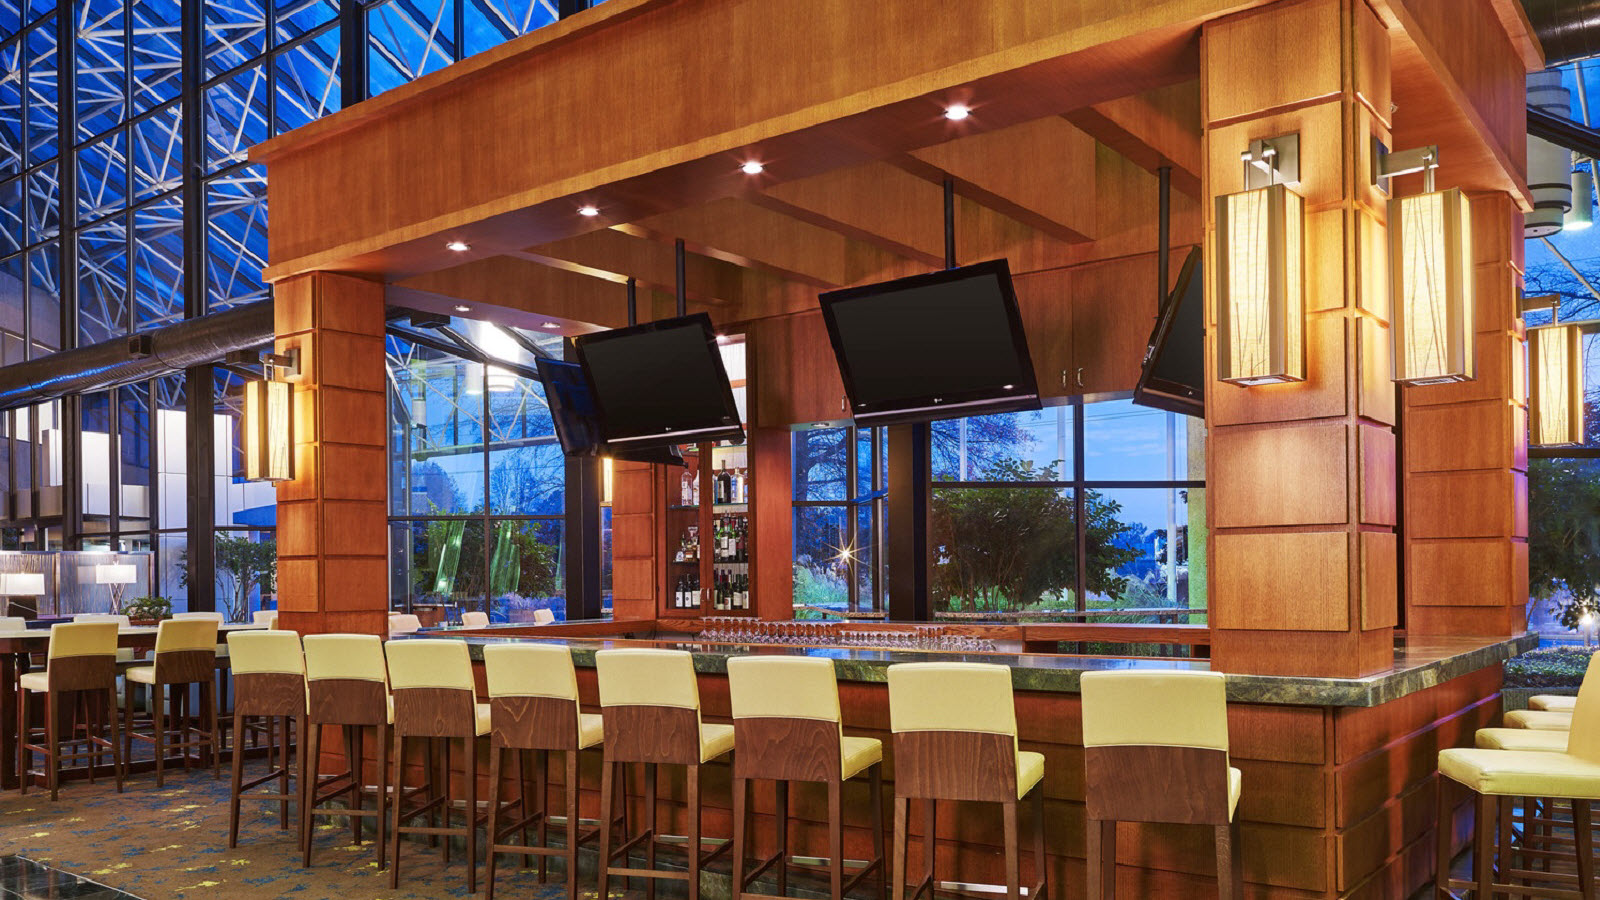 https://www.hotelsbyday.com/_data/default-hotel_image/0/1164/the-westin-atlanta-airport-martinis-lounge.jpg